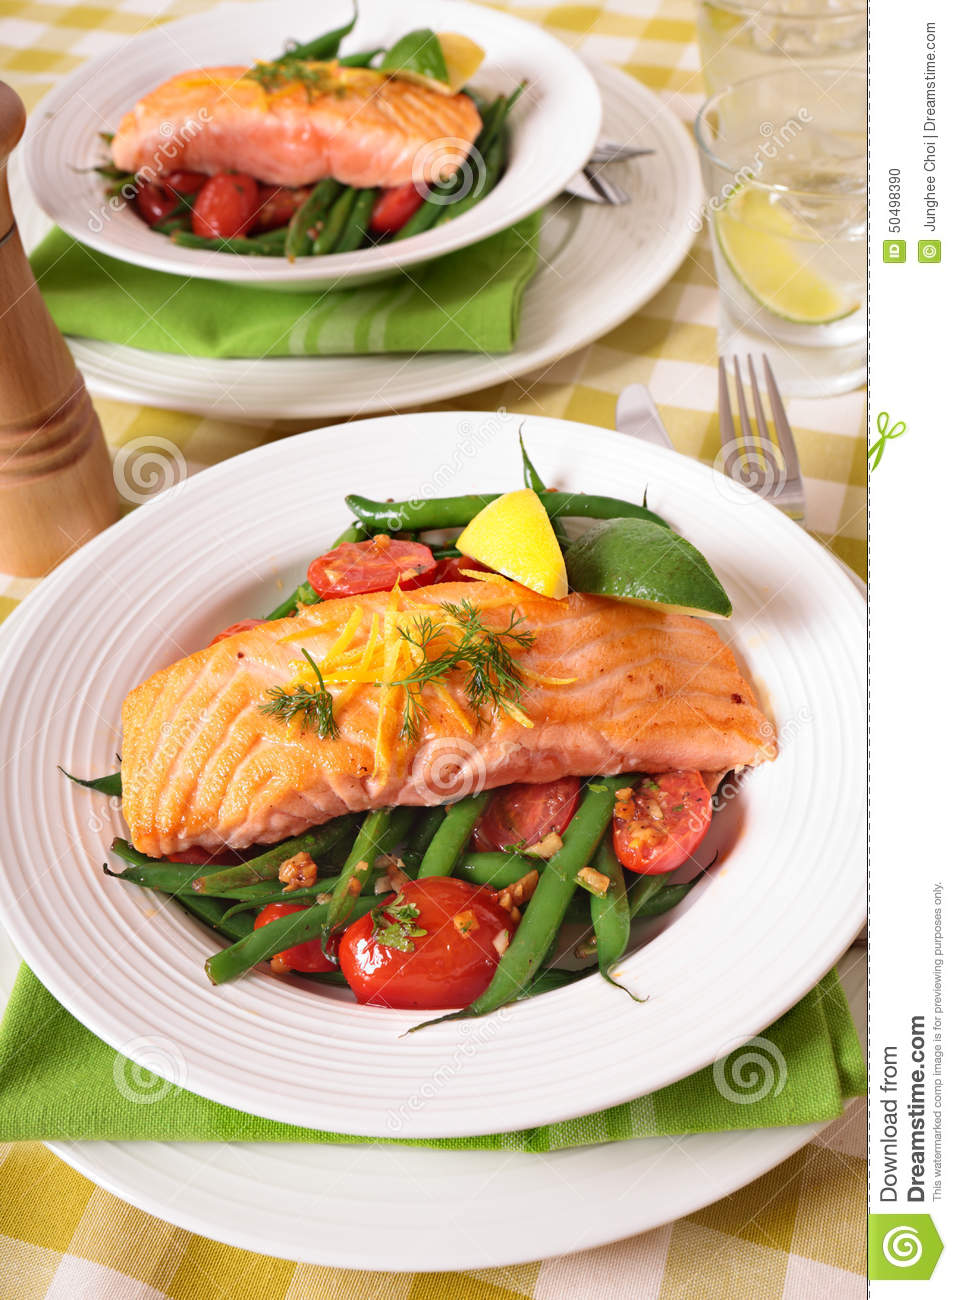 Watch Roasted Salmon, Green Beans, and Tomatoes video